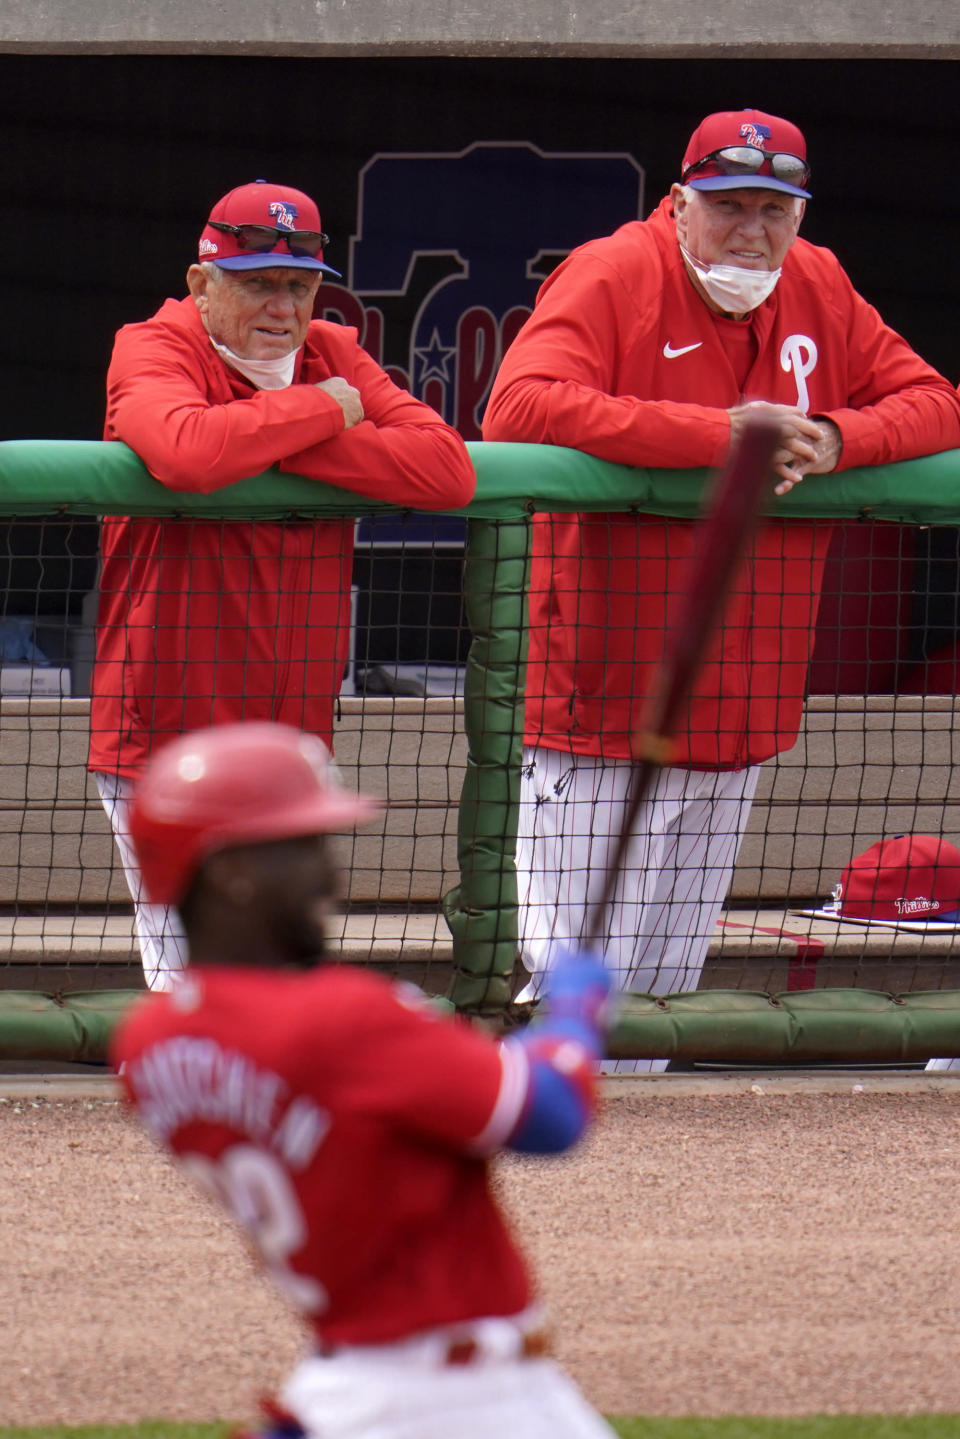 Philadelphia Phillies former managers and spring training coaches Larry Bowa, left rear, and Charlie Manuel, right rear, watch as Andrew McCutchen singles off Detroit Tigers starting pitcher Michael Fulmer during the fifth inning of a spring training exhibition baseball game in Clearwater, Fla., Sunday, March 21, 2021. (AP Photo/Gene J. Puskar)